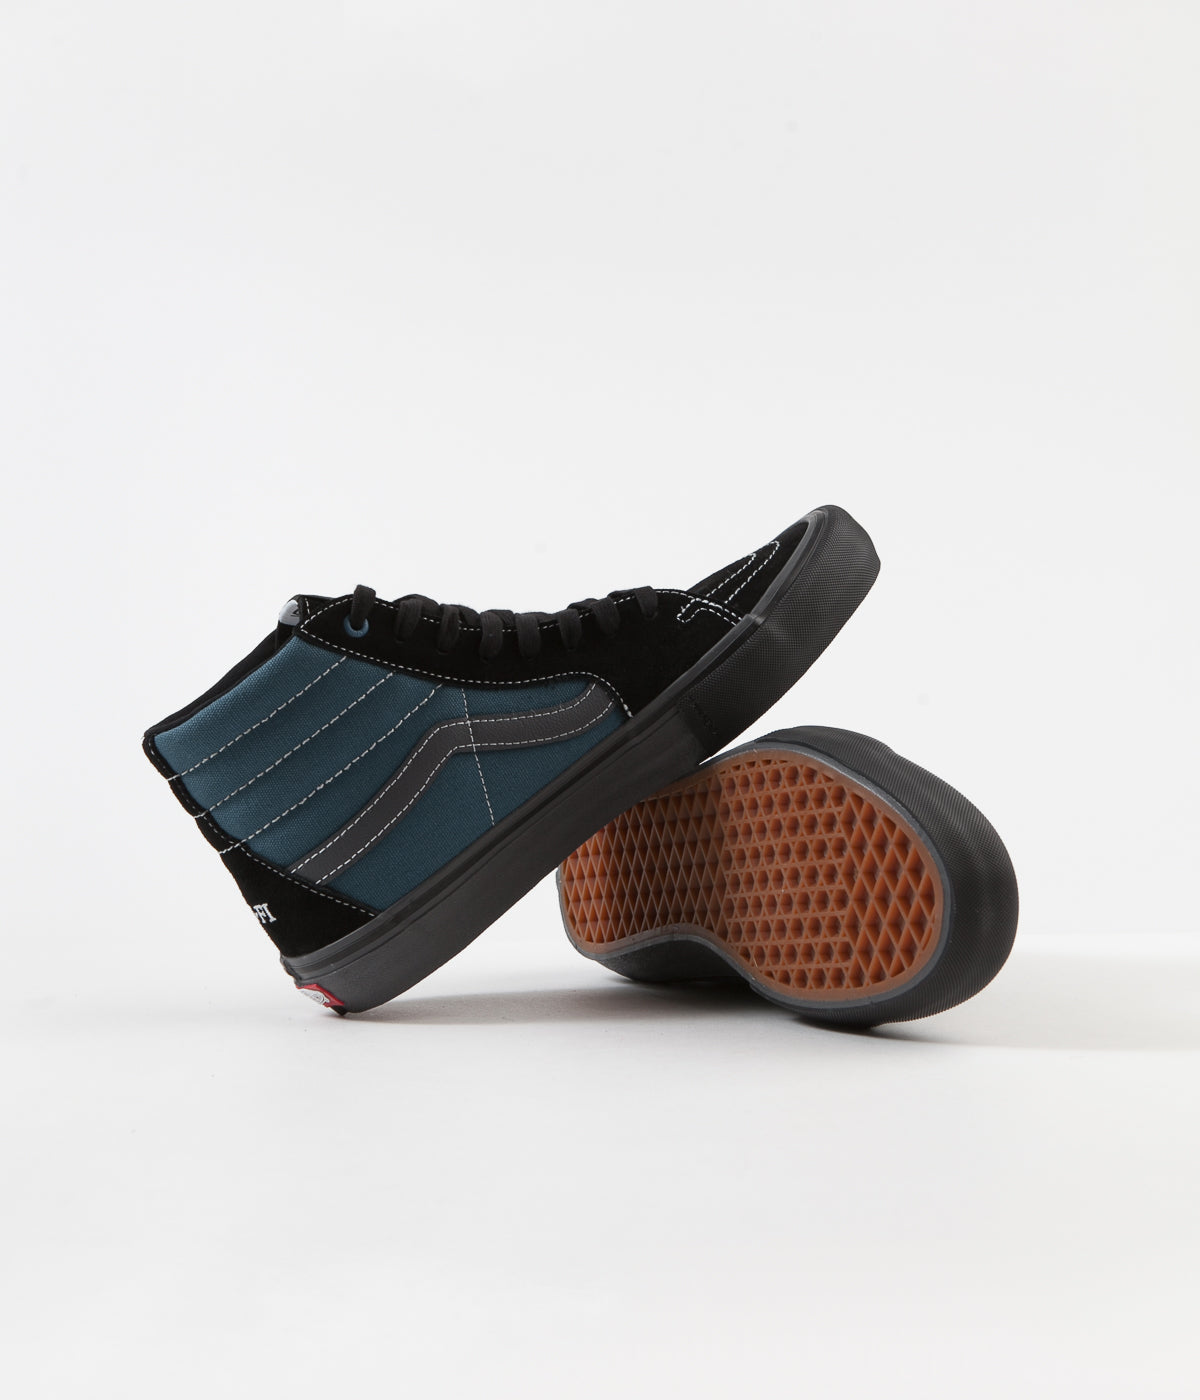 Vans x Sci-Fi Fantasy Sk8-Hi Pro Shoes - Black / Blue